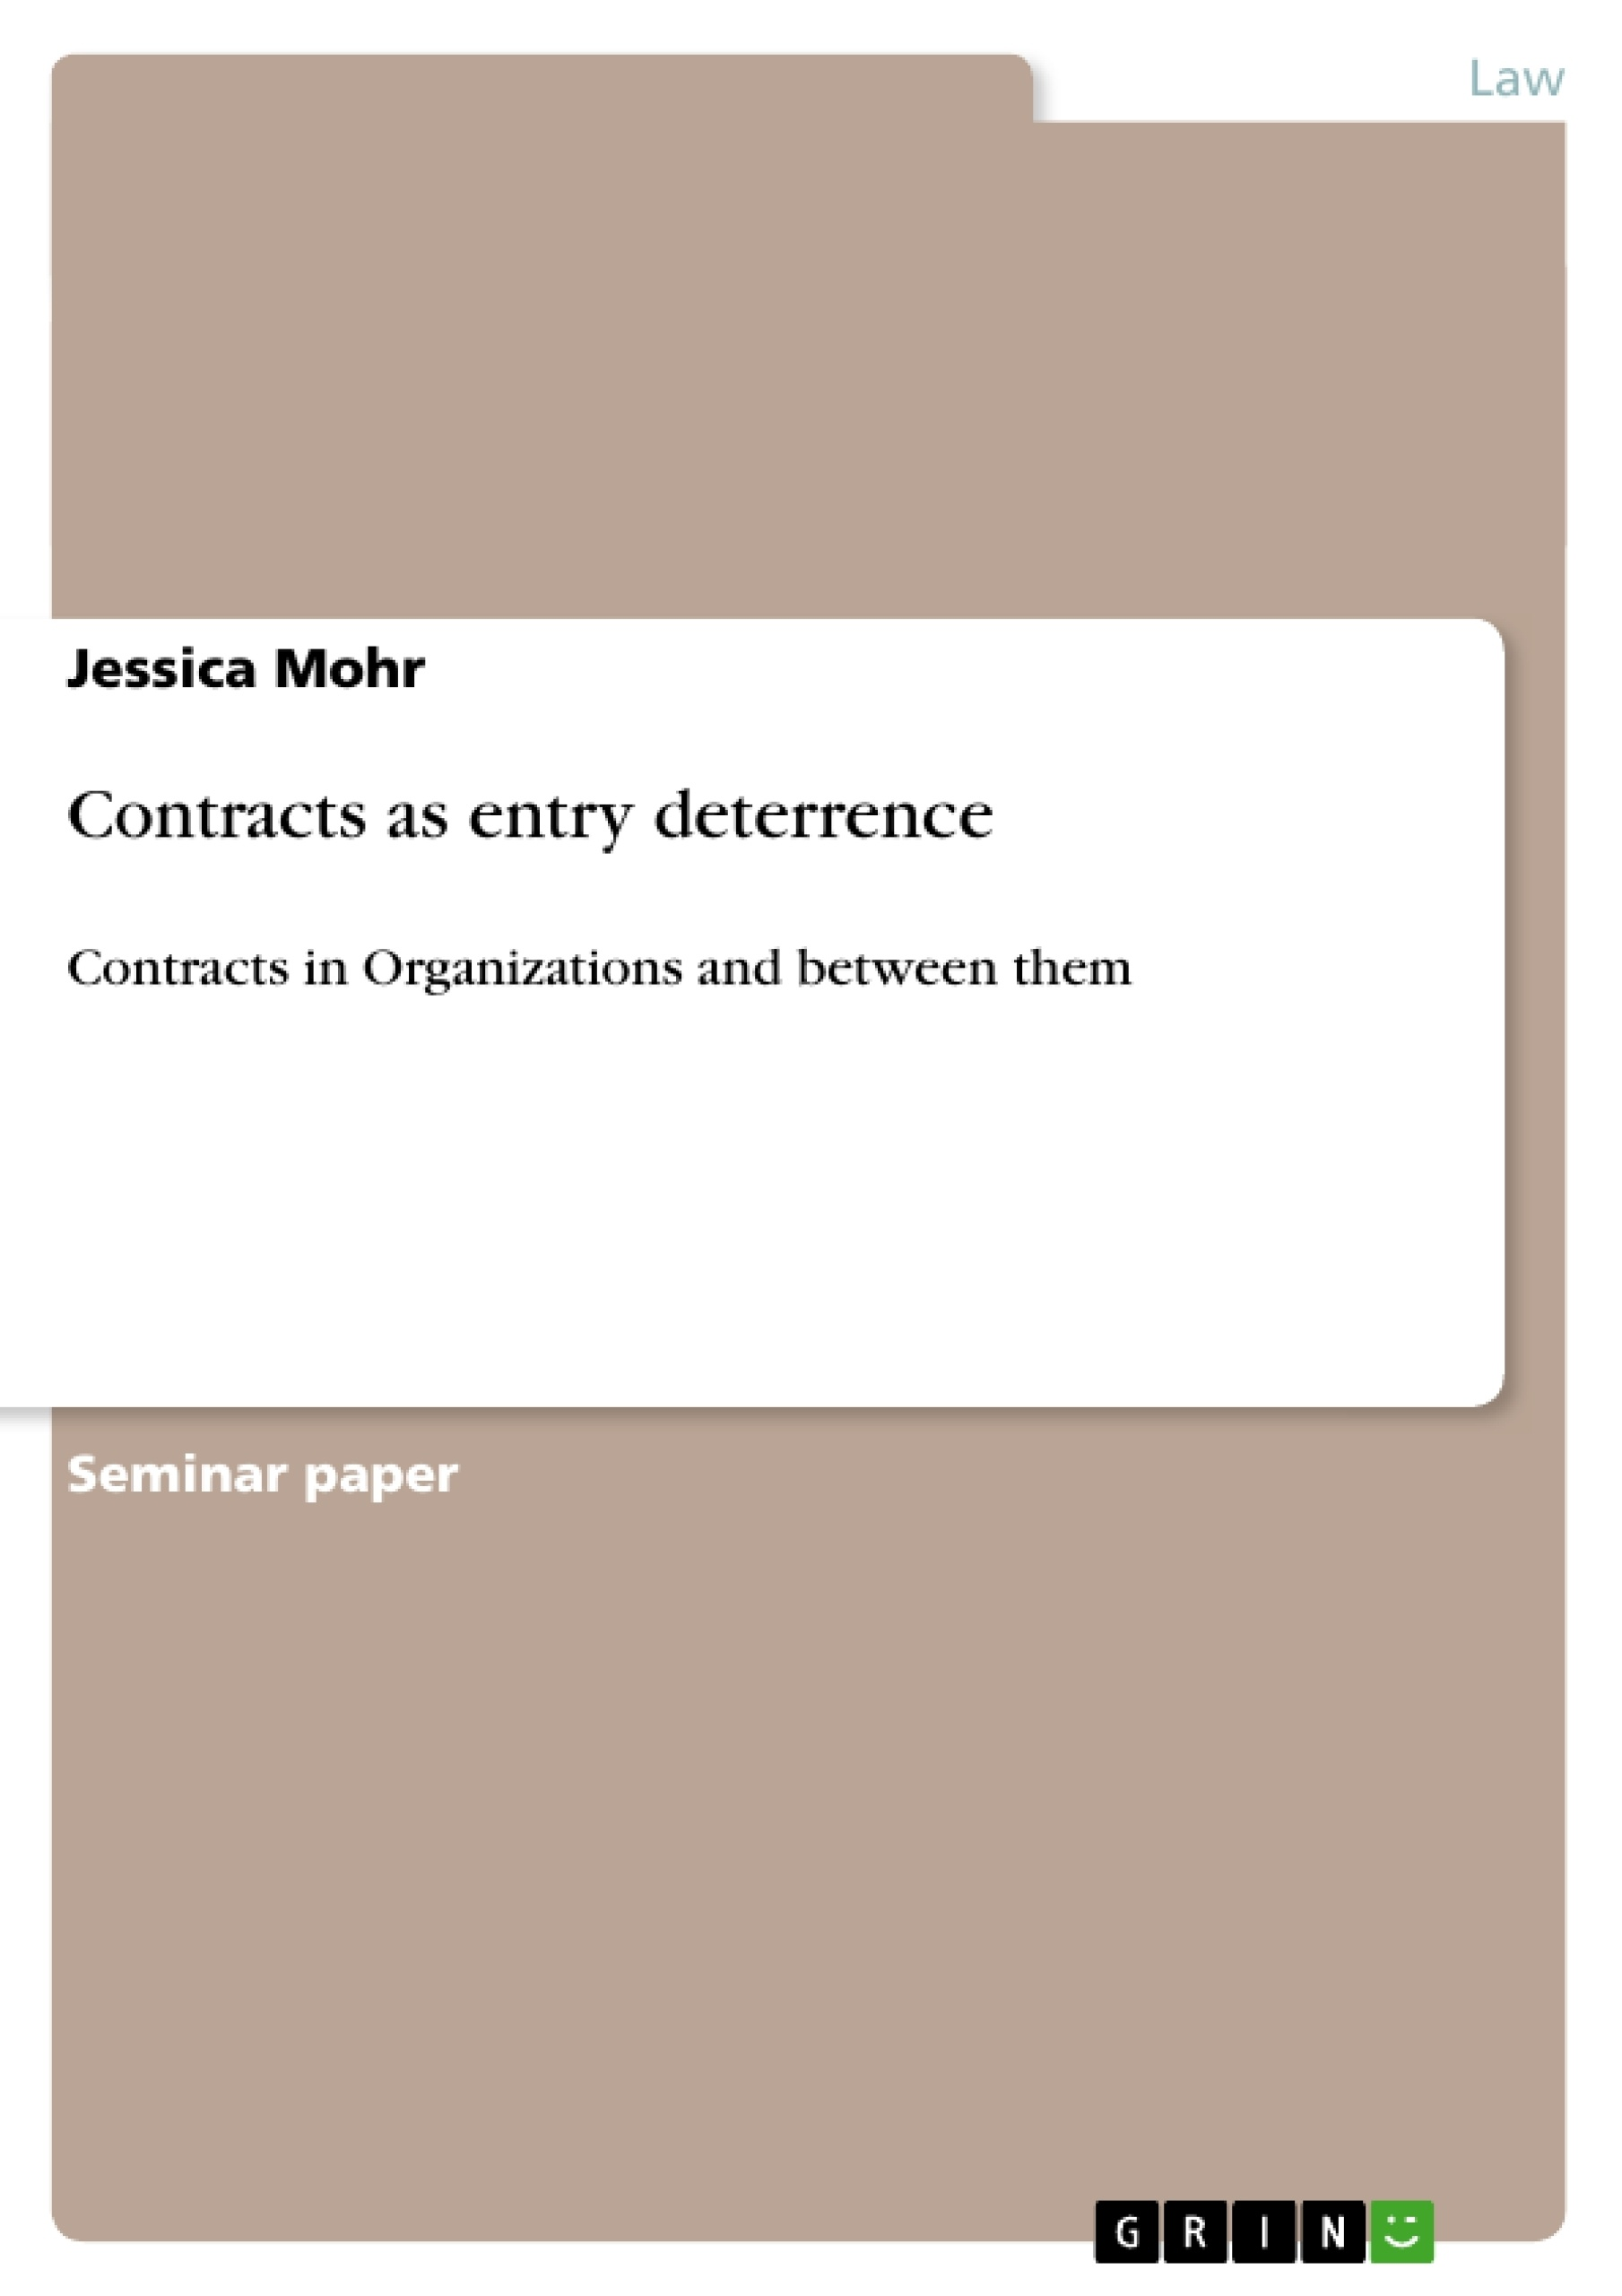 Title: Contracts as entry deterrence